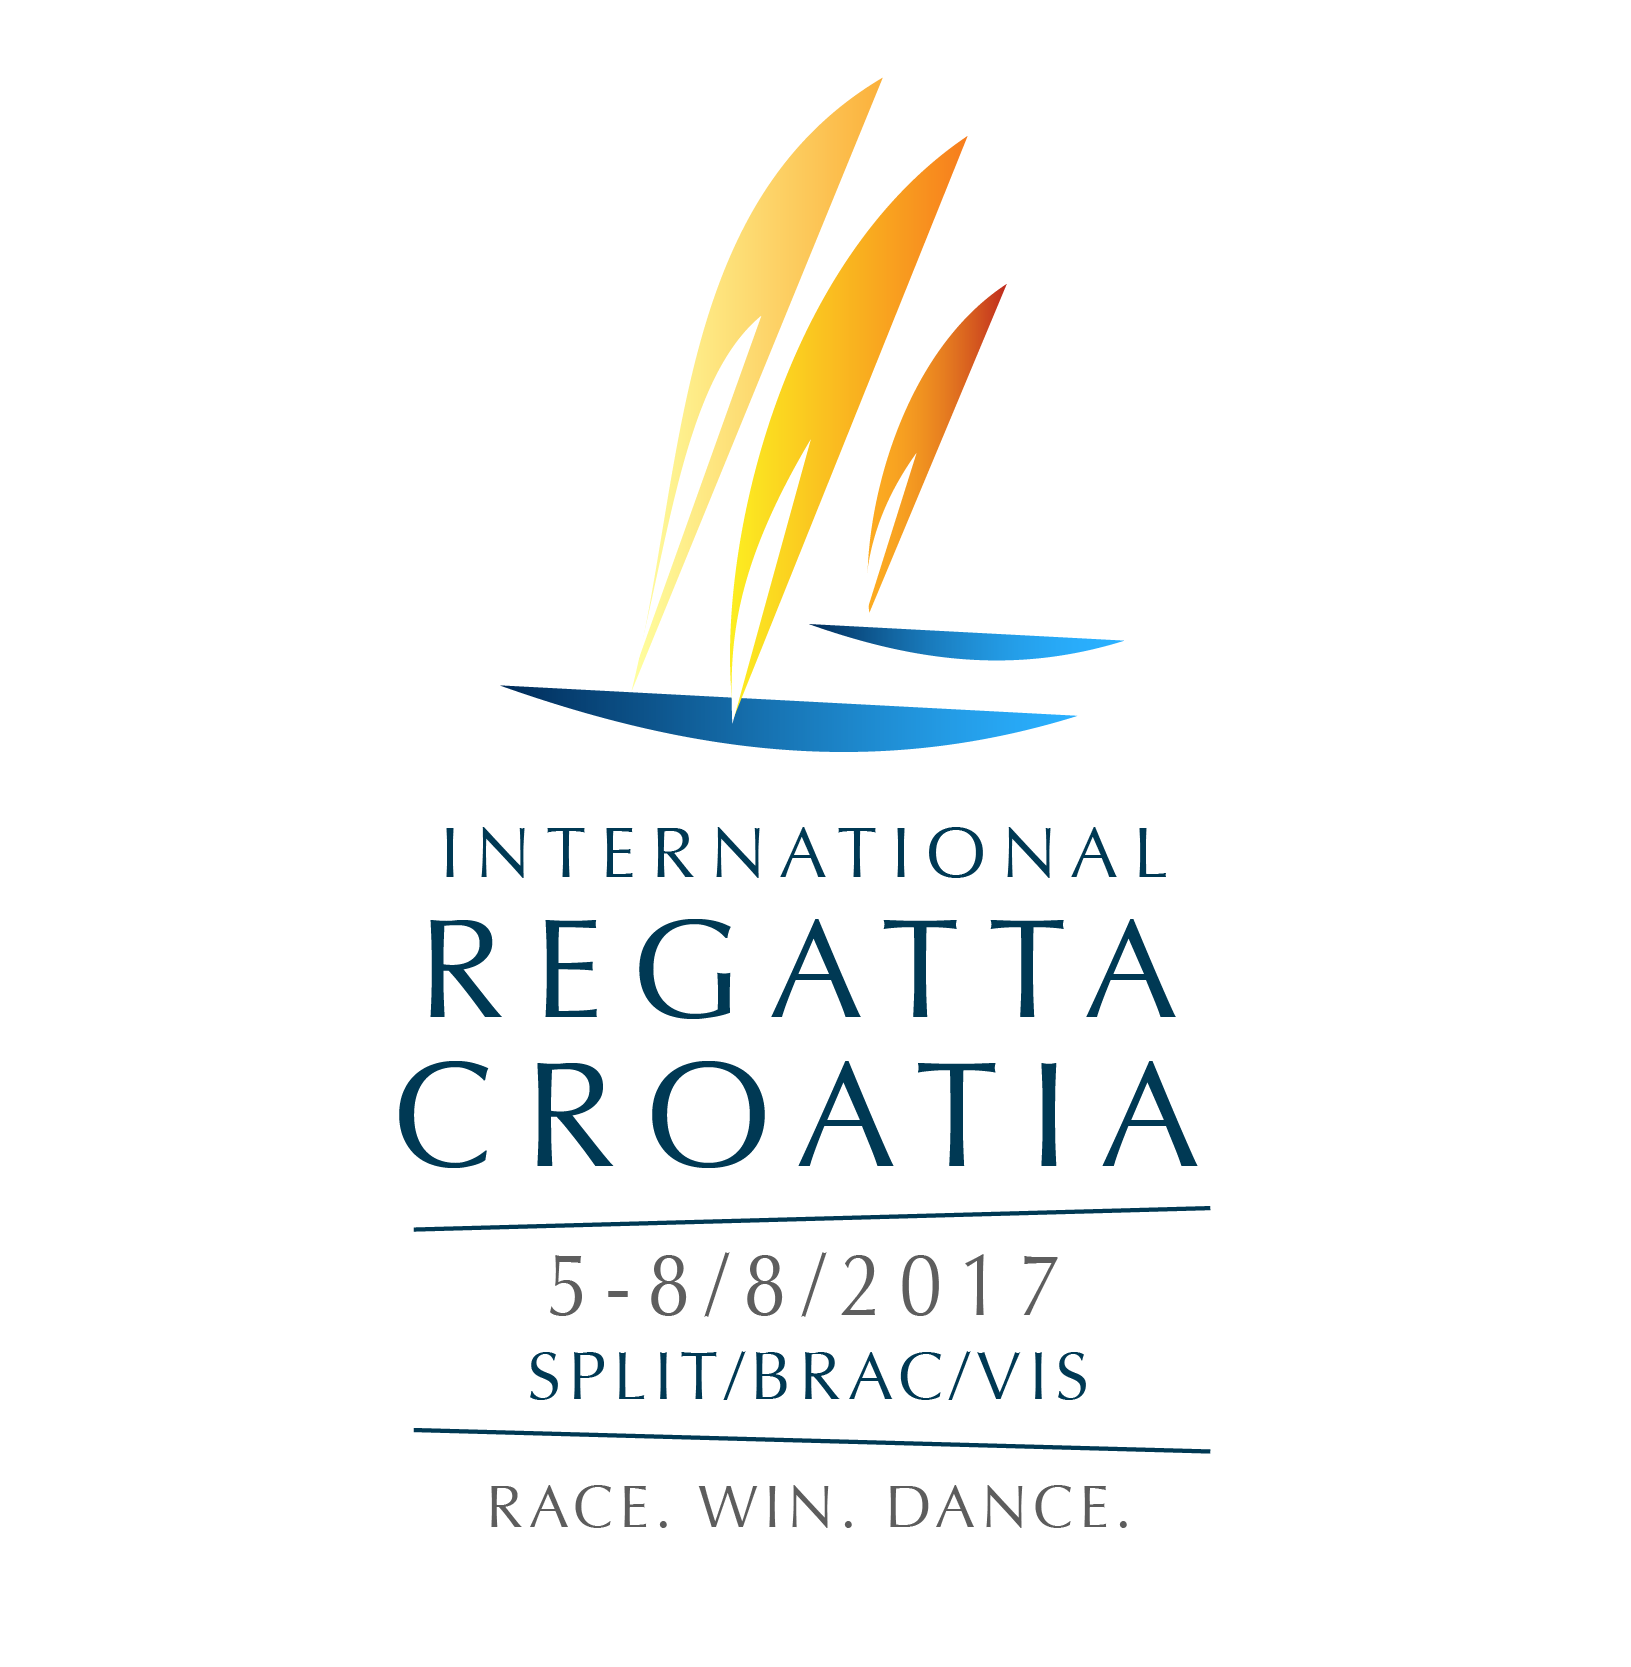 International Regatta Croatia powered by Heineken - FULL EXPERIENCE